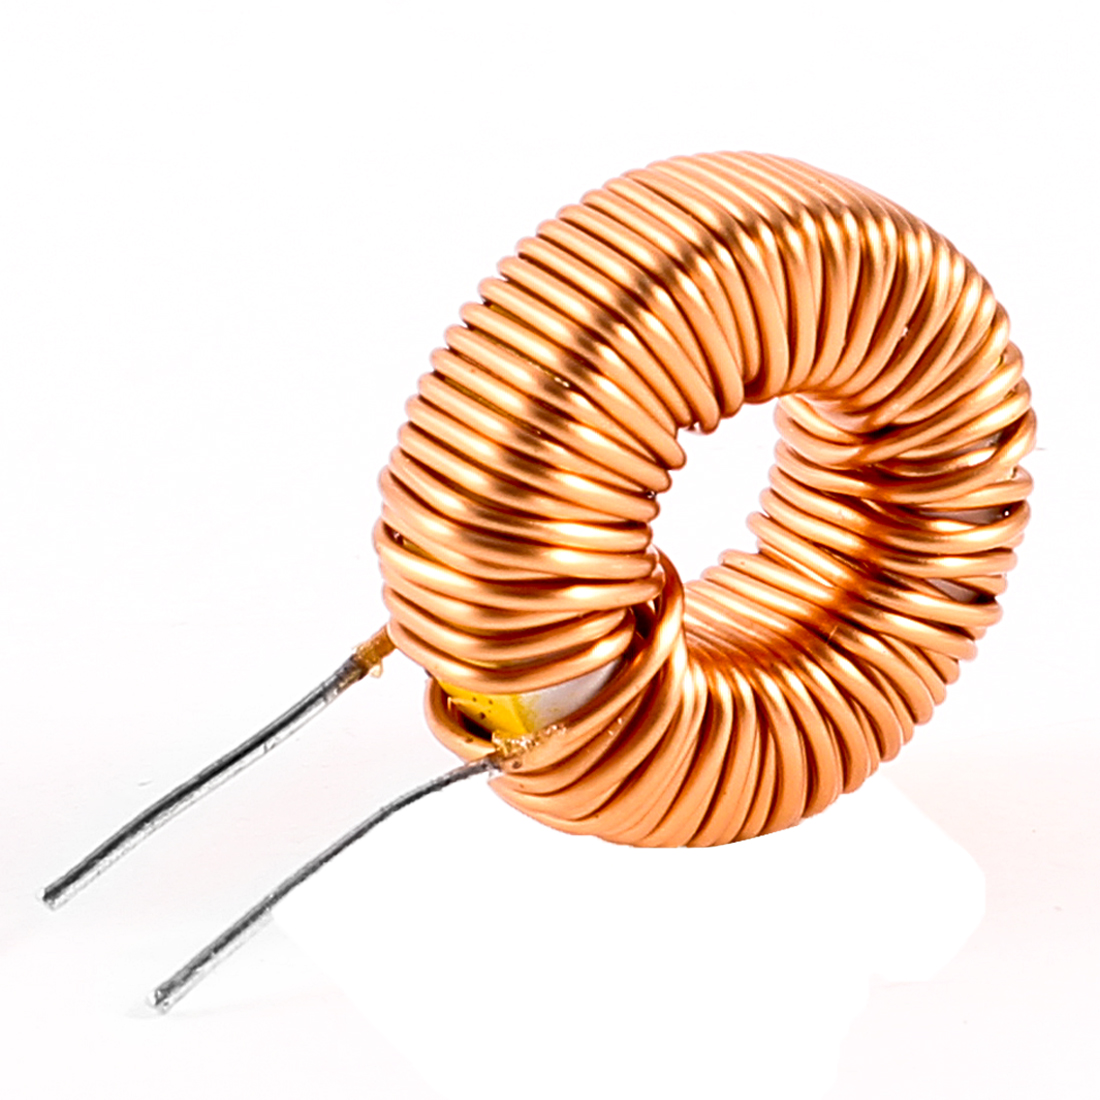 UXCELL Toroid Core Inductor Wire Wind Wound 220Uh 59Mohm 4A Coil(China (Mainland))